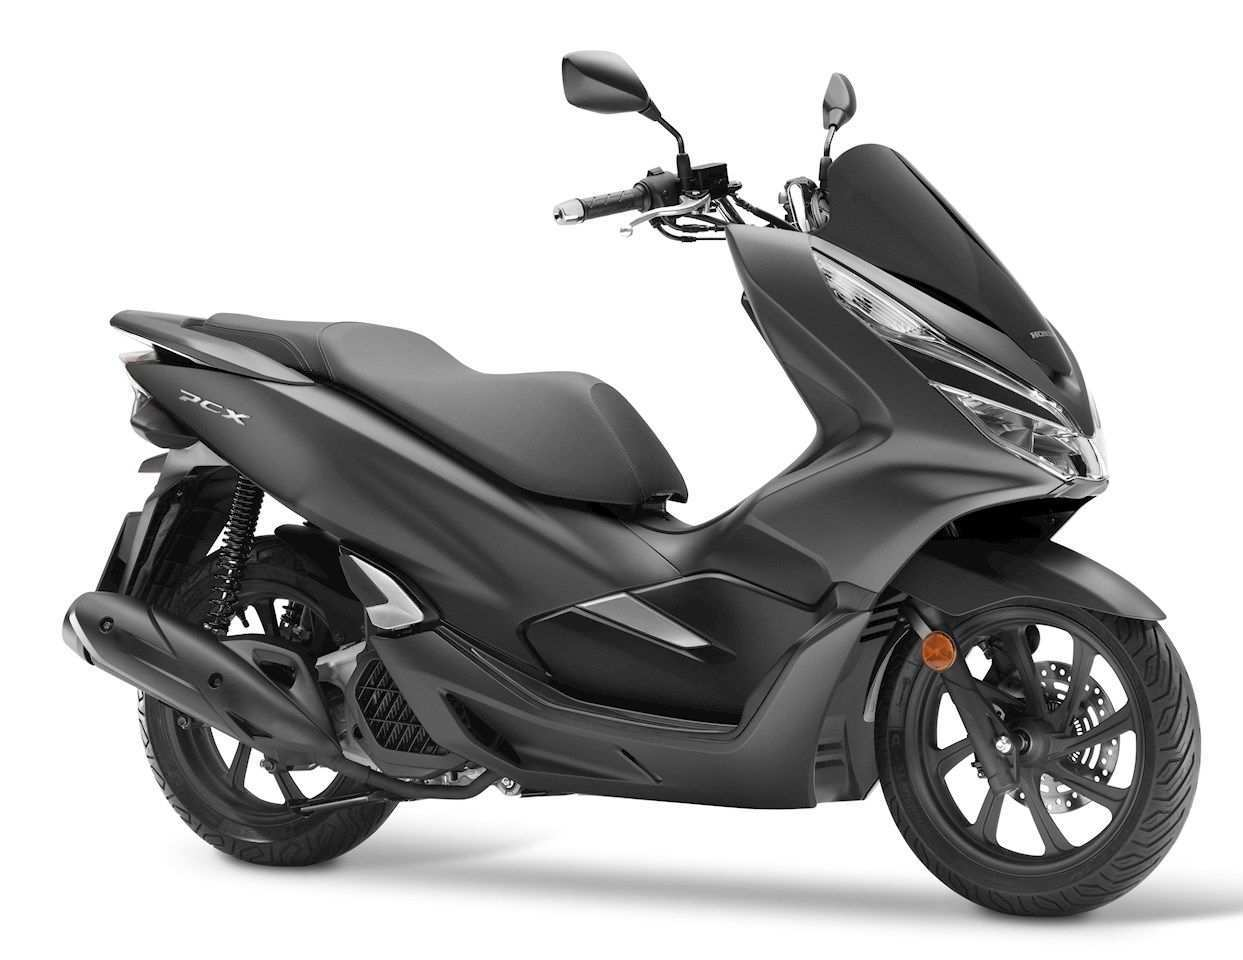 90 New New 2019 Honda Pcx150 Redesign Images for New 2019 Honda Pcx150 Redesign